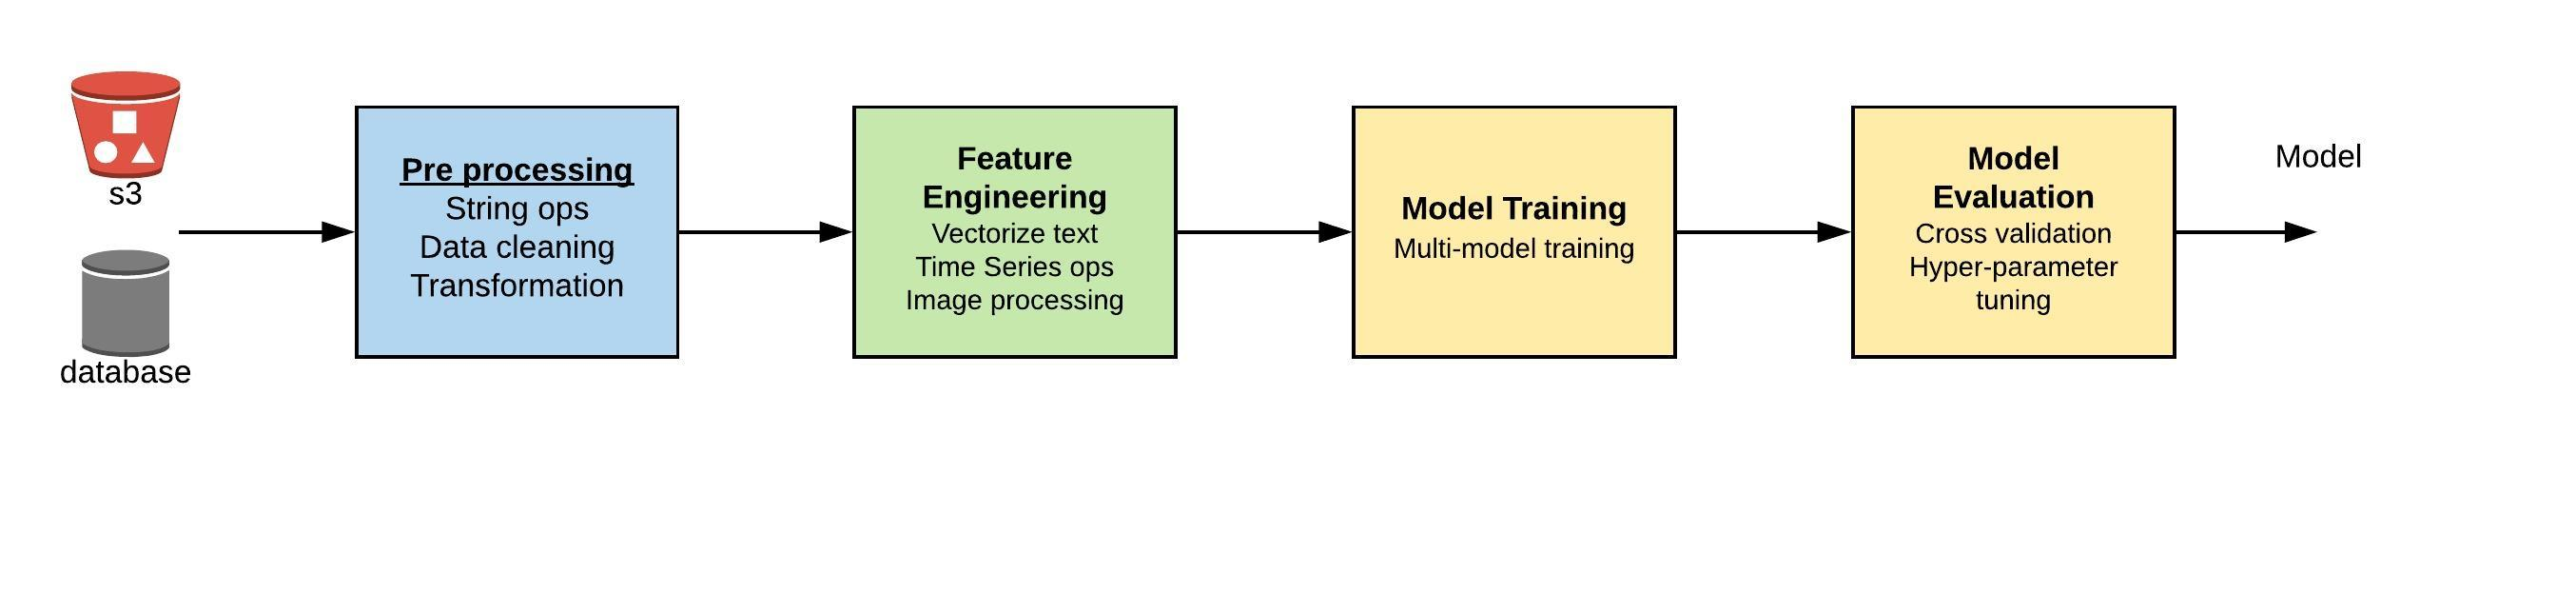 ML pipelines - dask uses cases in ML